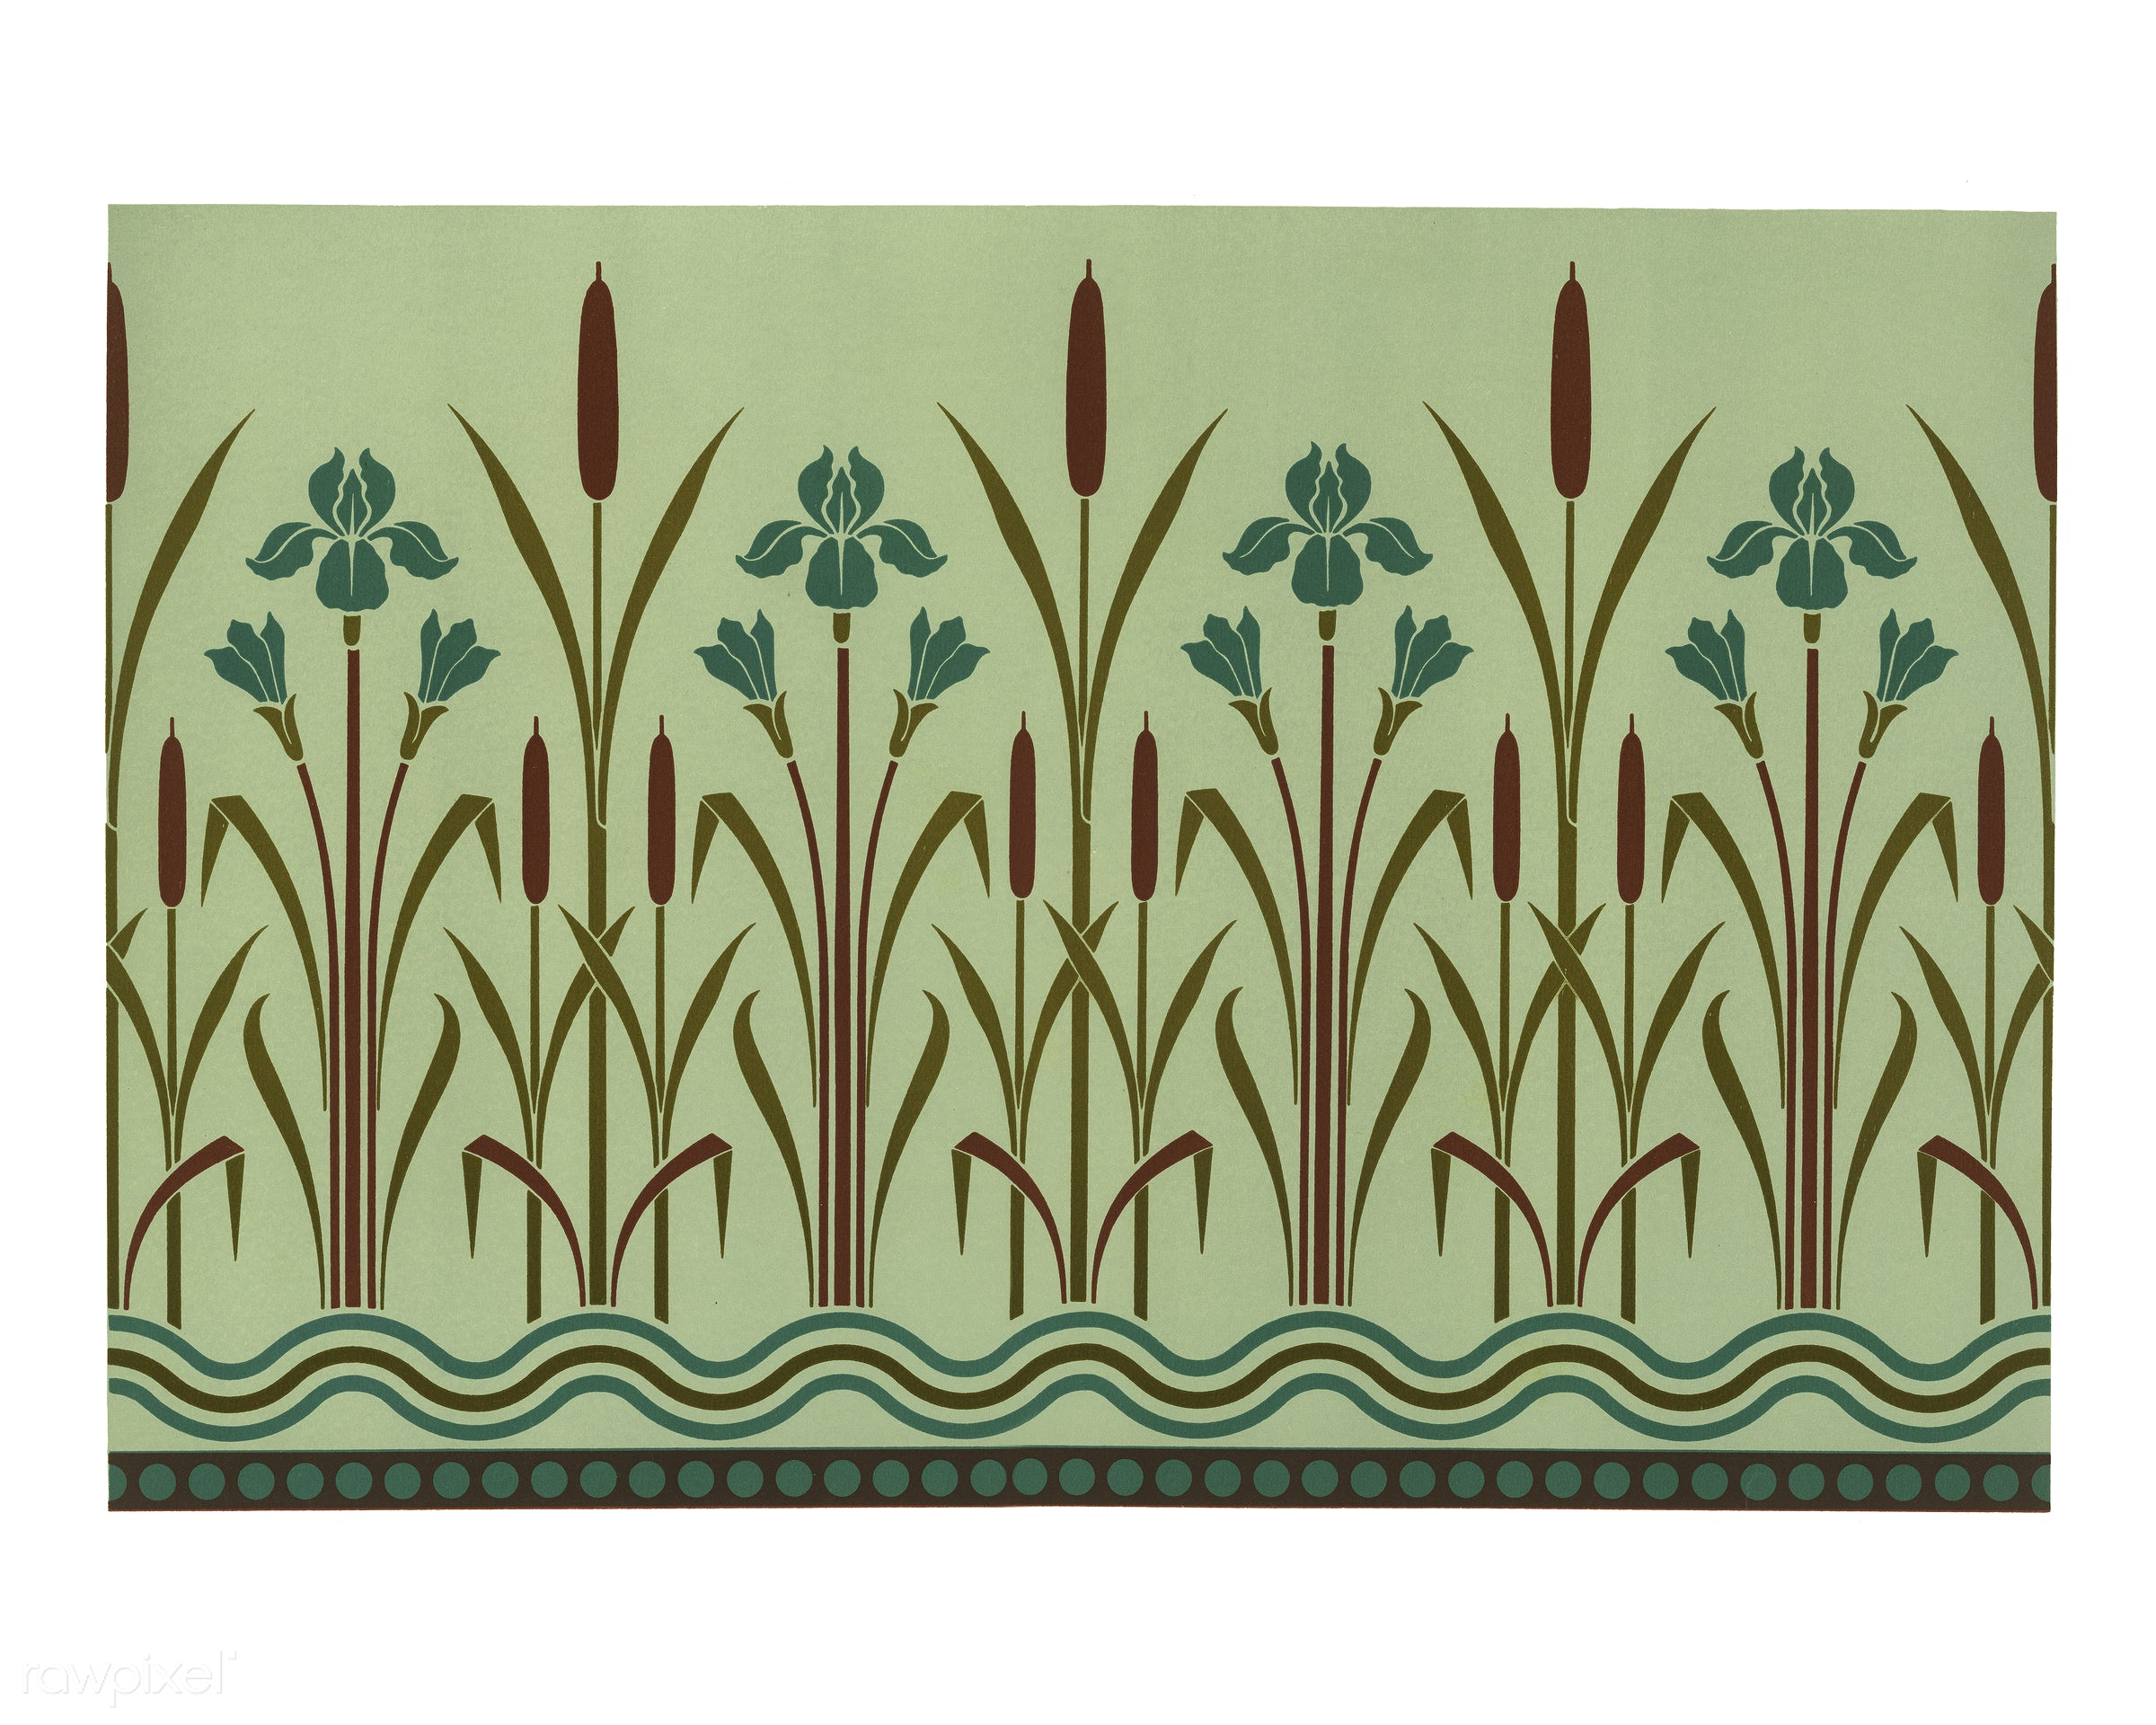 Floral pattern from The Practical Decorator and Ornamentist (1892) by G.A Audsley and M.A. Audsley. Digitally enhanced from...